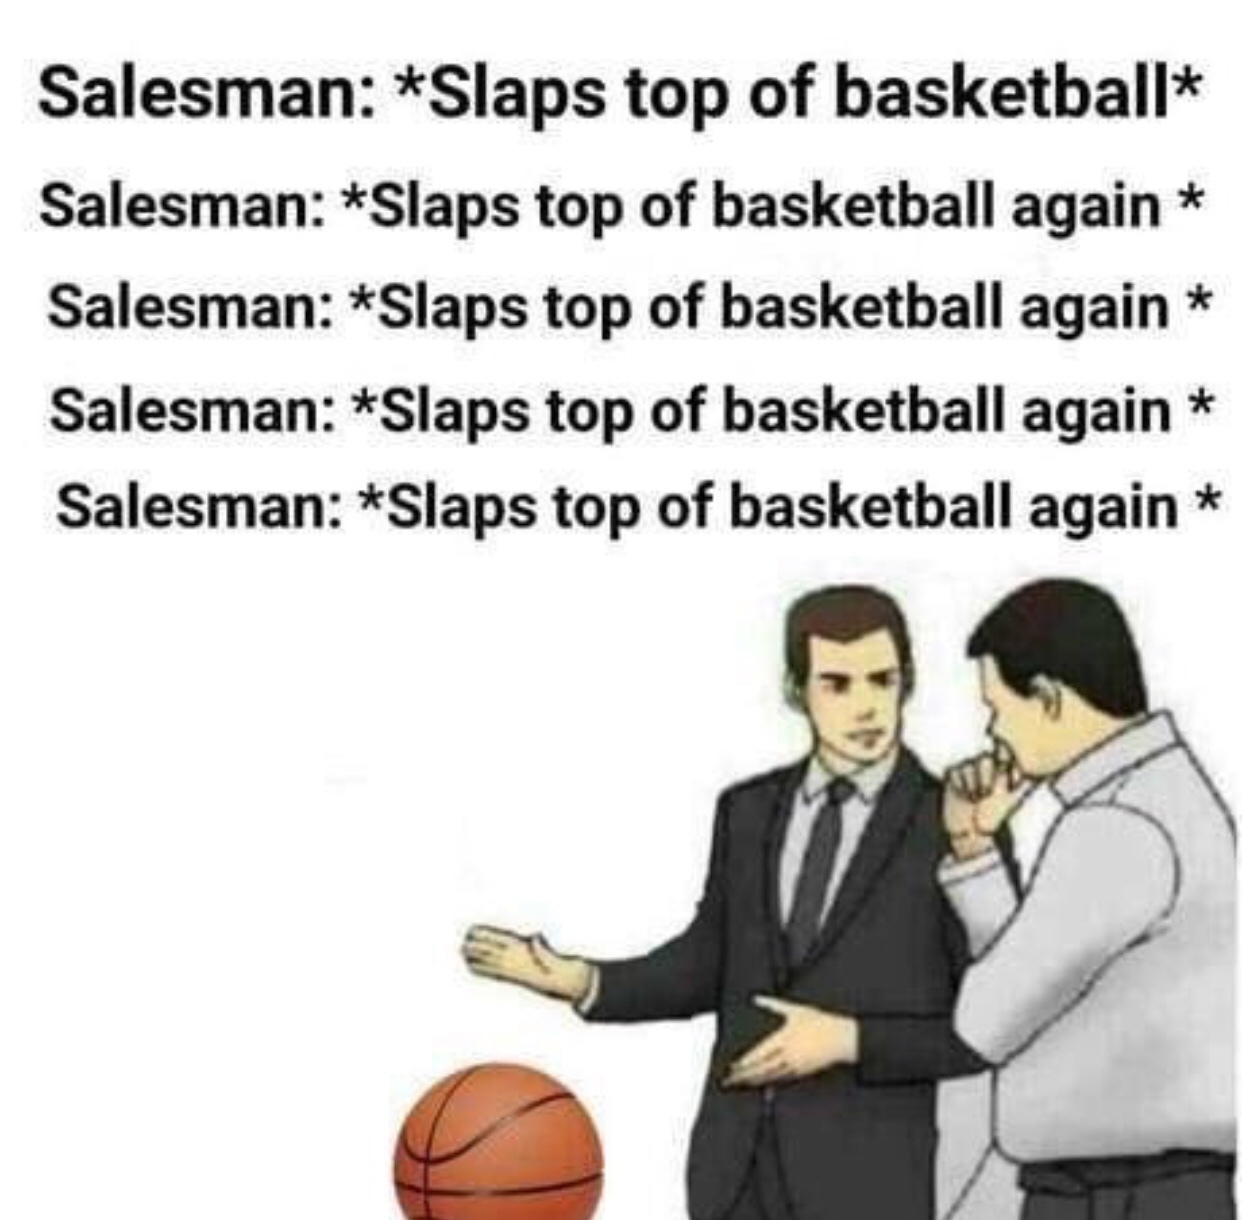 Now this here ball can bounce so many times *slaps top of basketball* - meme